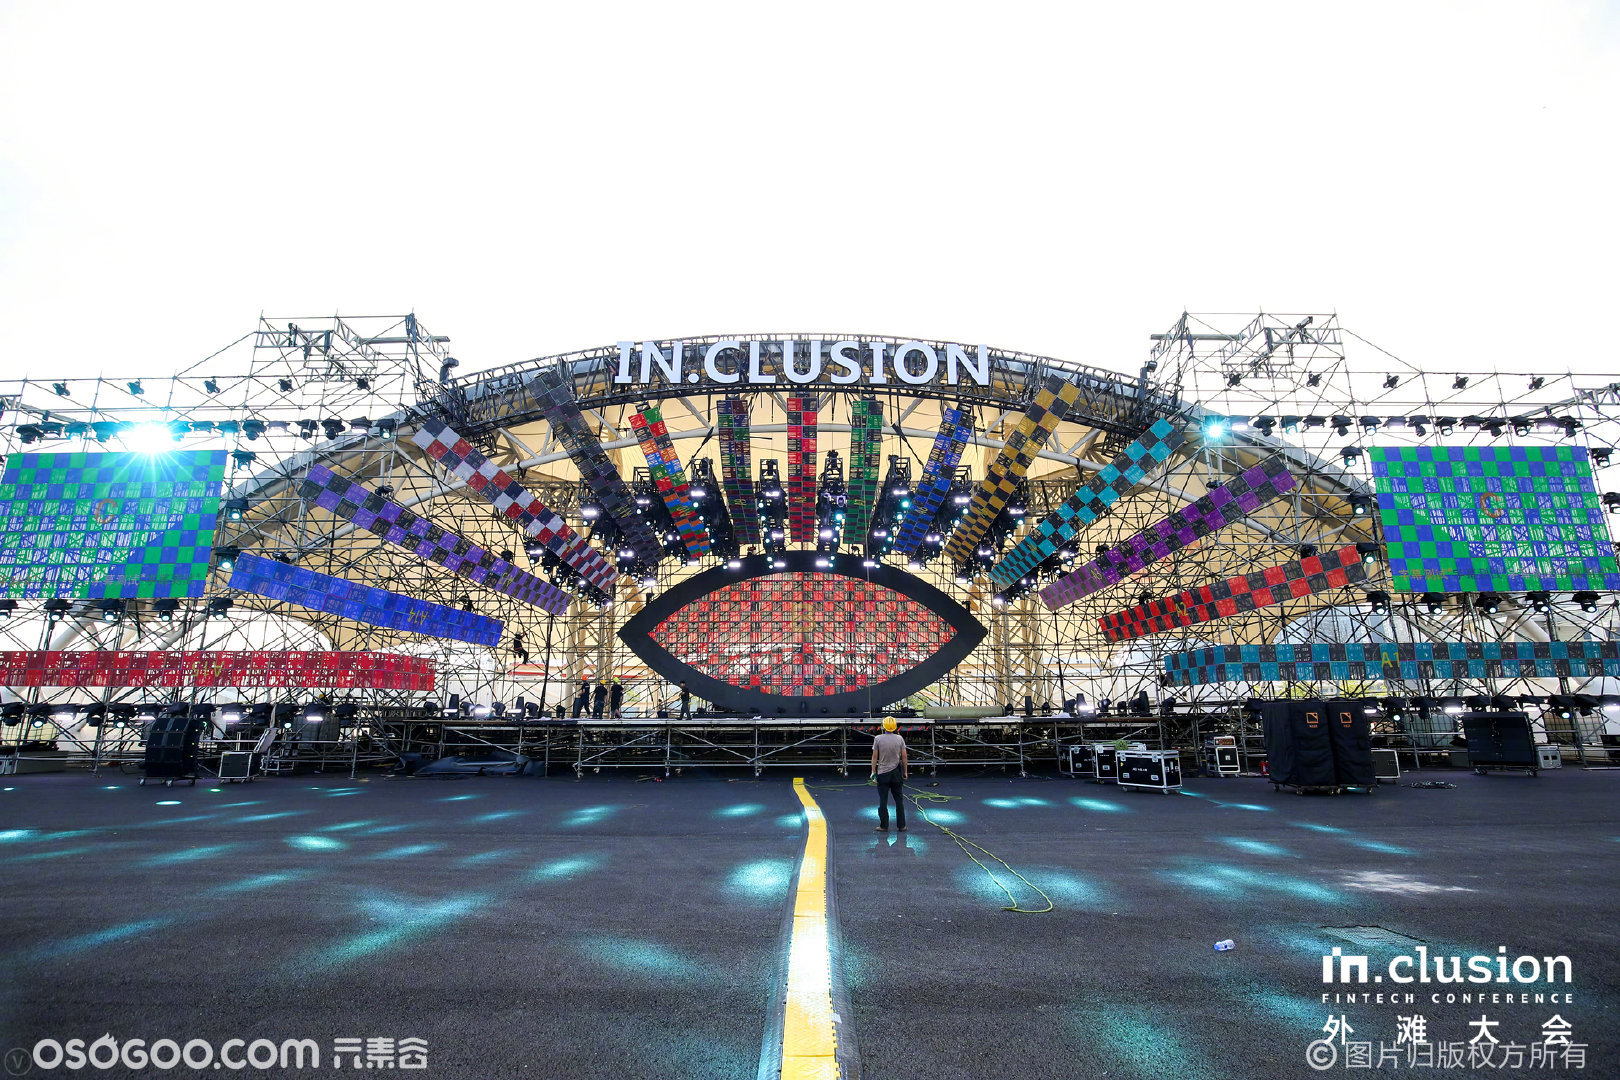 IN.CLUSION 外滩大会